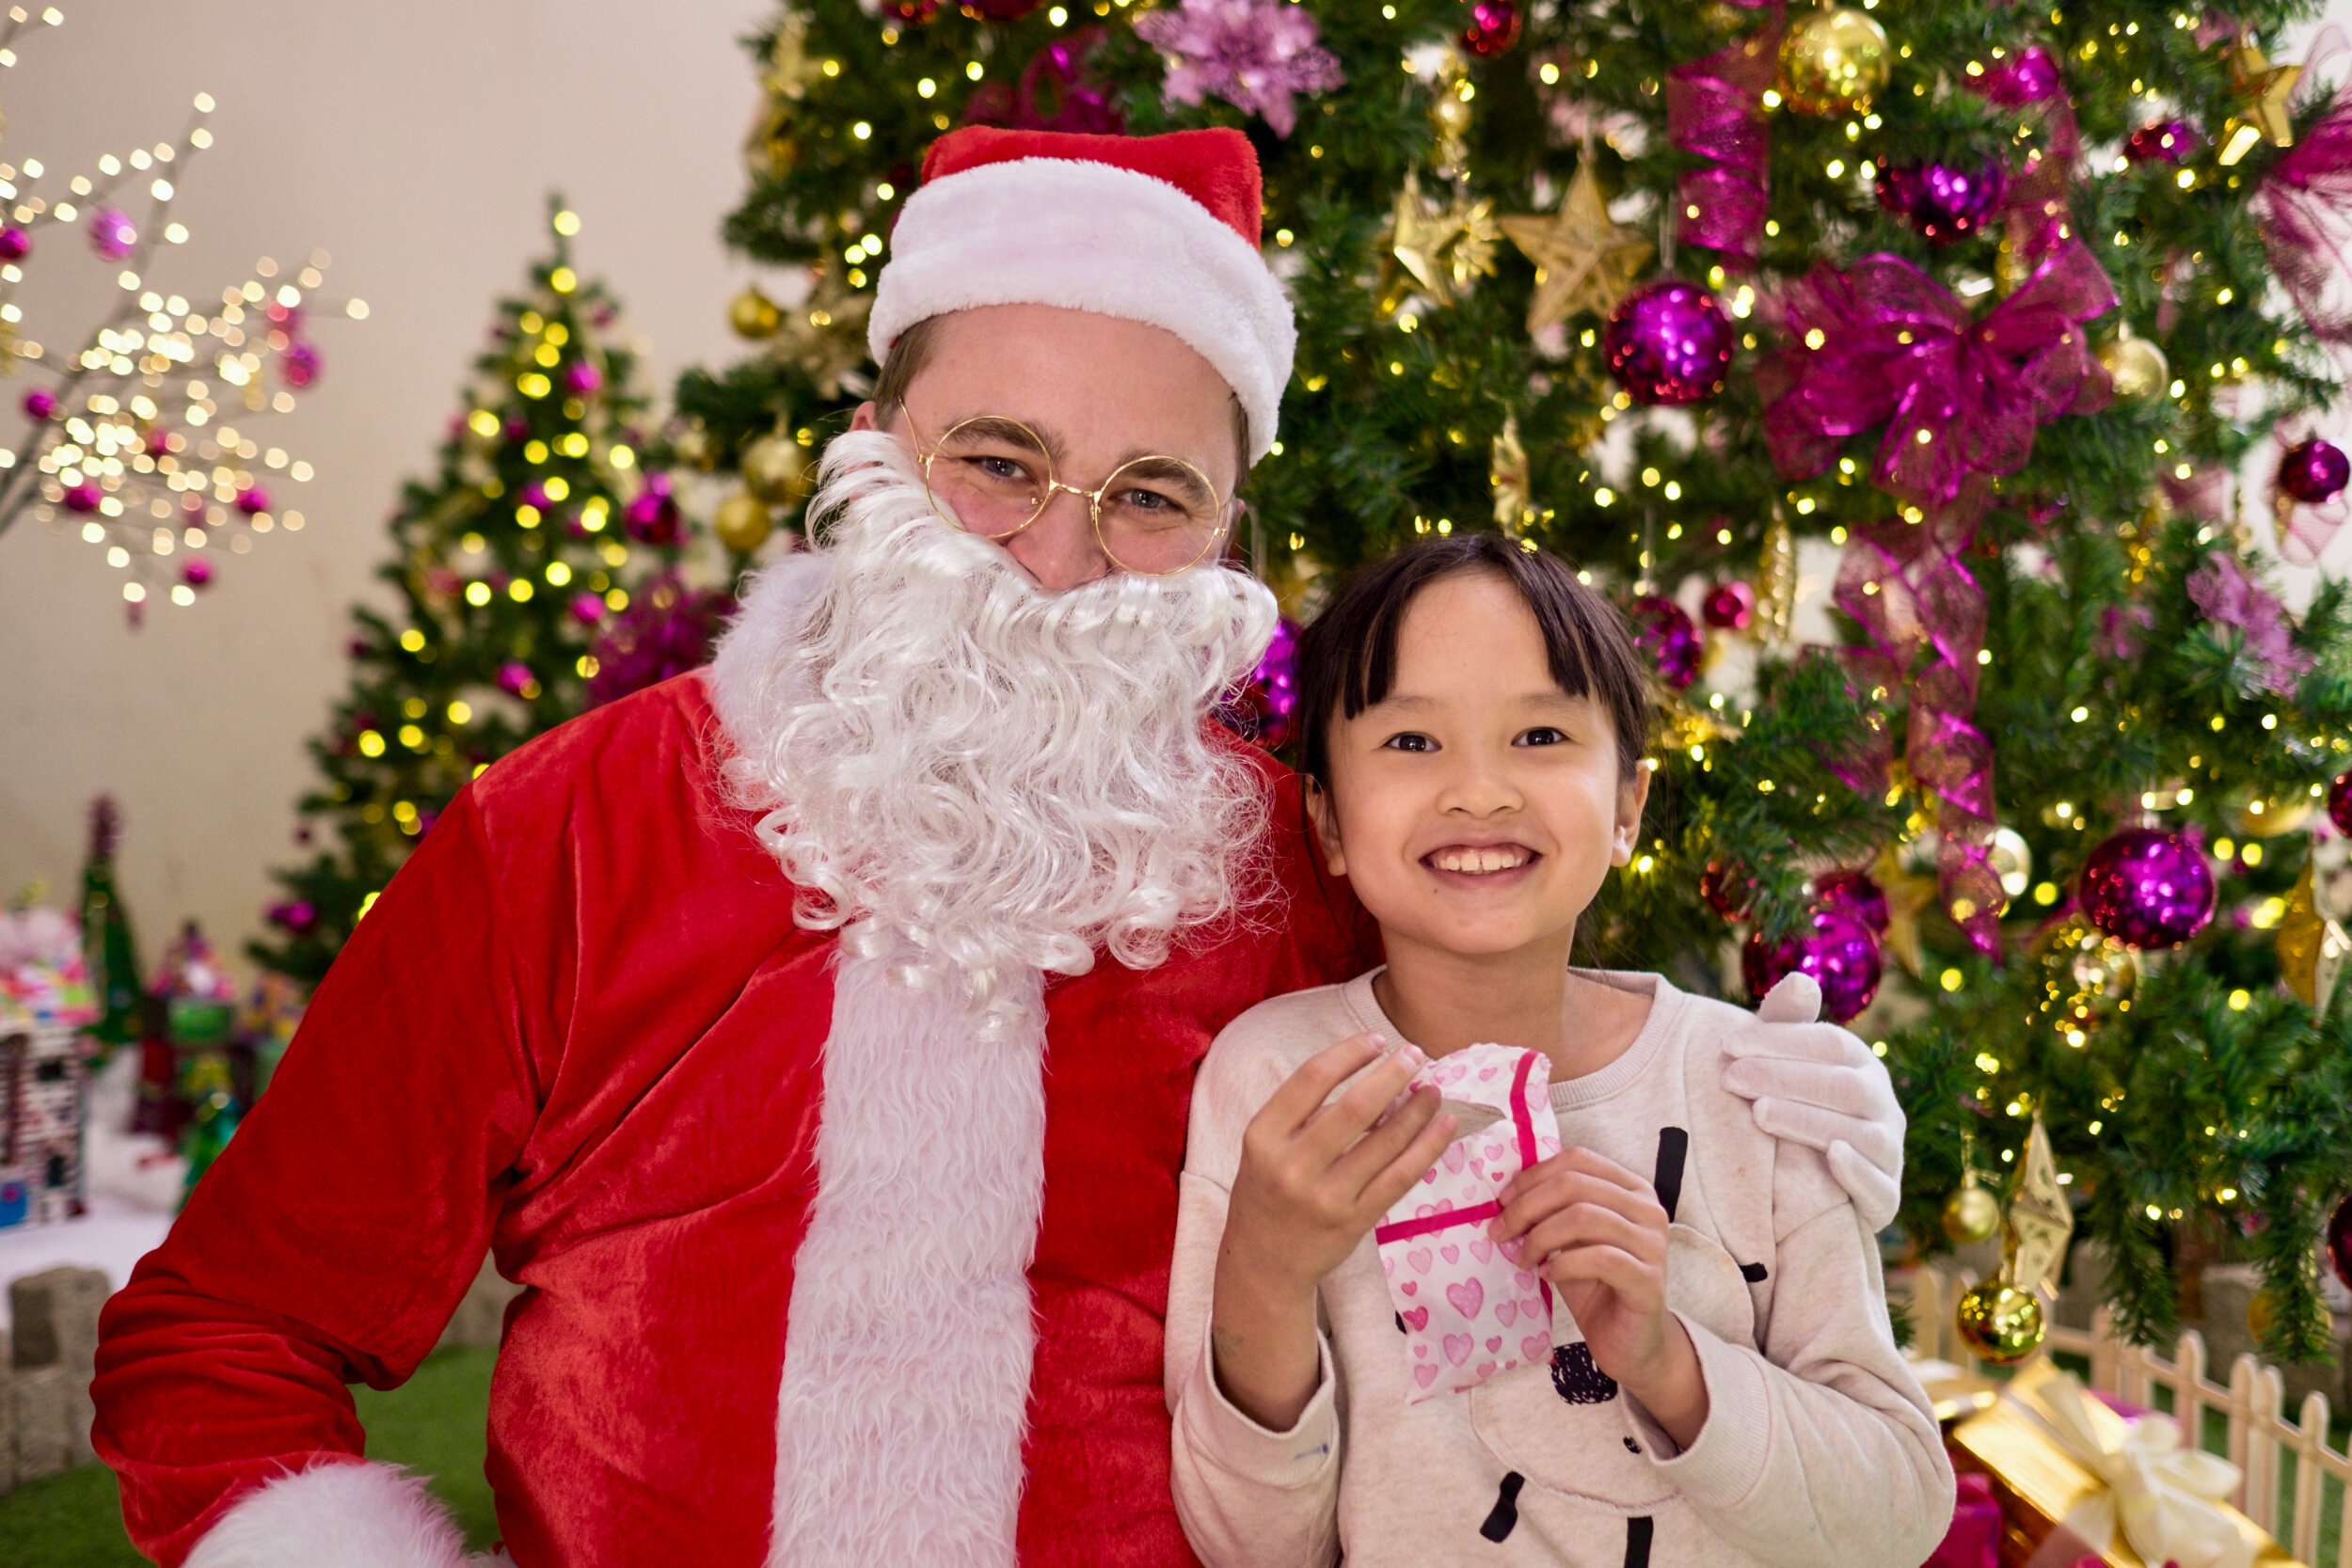 Photoshoot with Santa Clause-567.jpg